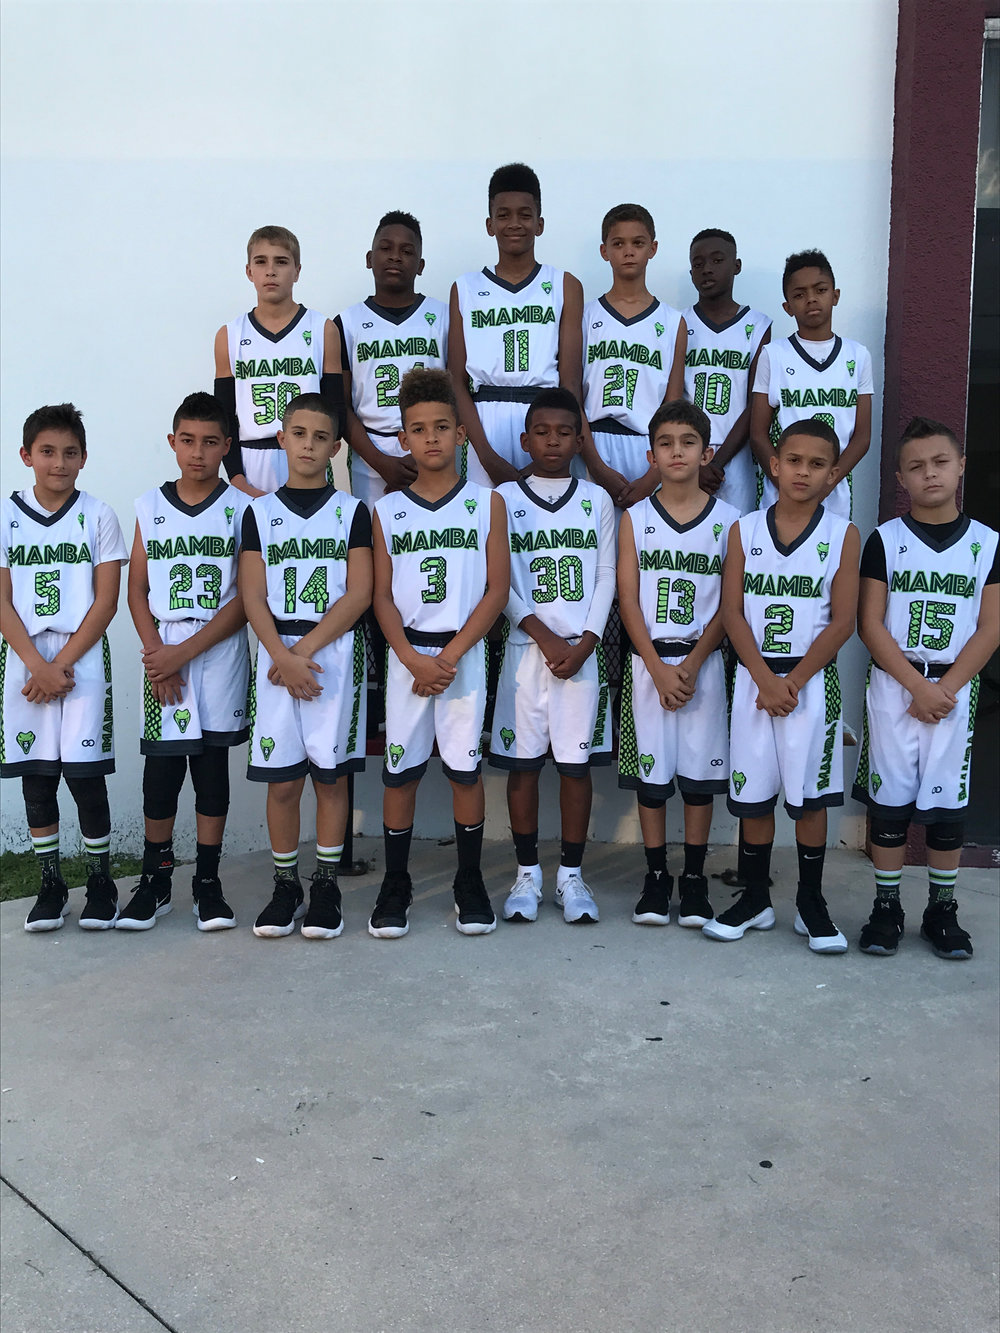 Youth MAMBA White Green Black basketball uniforms, jerseys, and shorts